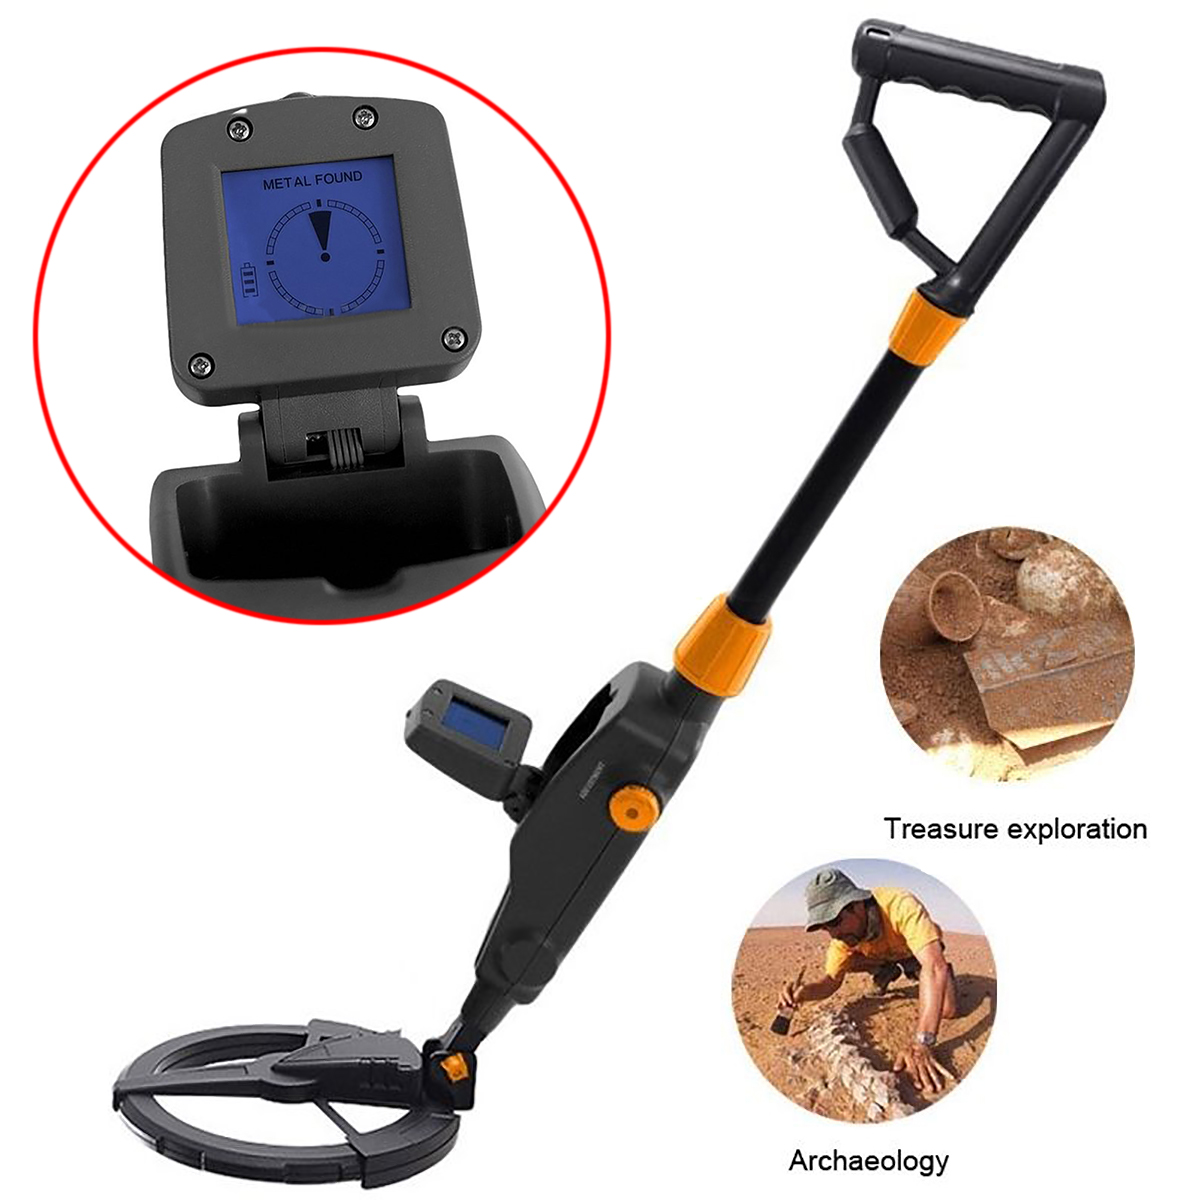 MD-1008A Black LCD Screen Metal Detector Mayitr Beach Search Machine Underground Gold Digger for Jewellery Metal Detection md 1008a black lcd screen metal detector mayitr beach search machine underground gold digger for jewellery metal detection